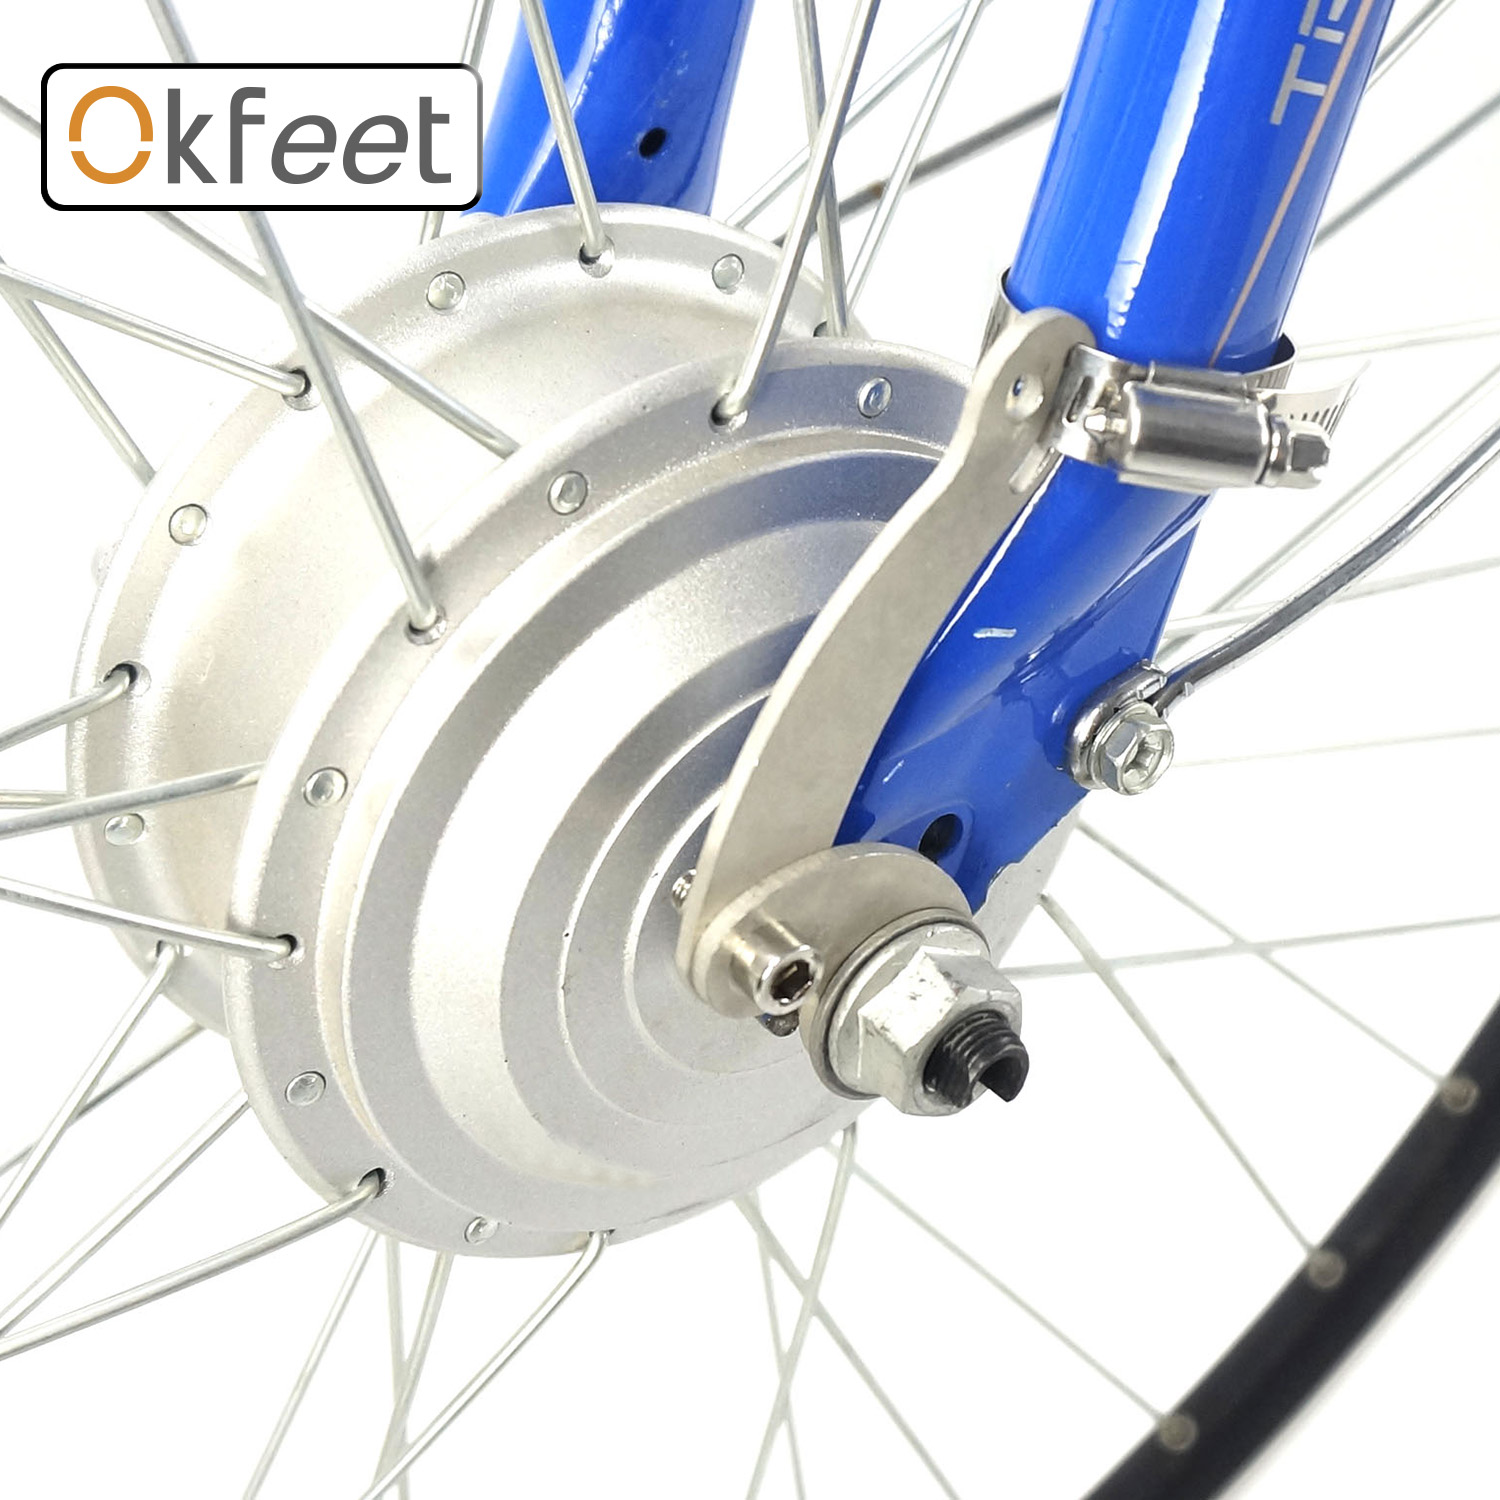 Okfeet Electric Bicycle Bike Conversion Kit Part Accessories Fix Motor Torque Arm For V Disc Brake